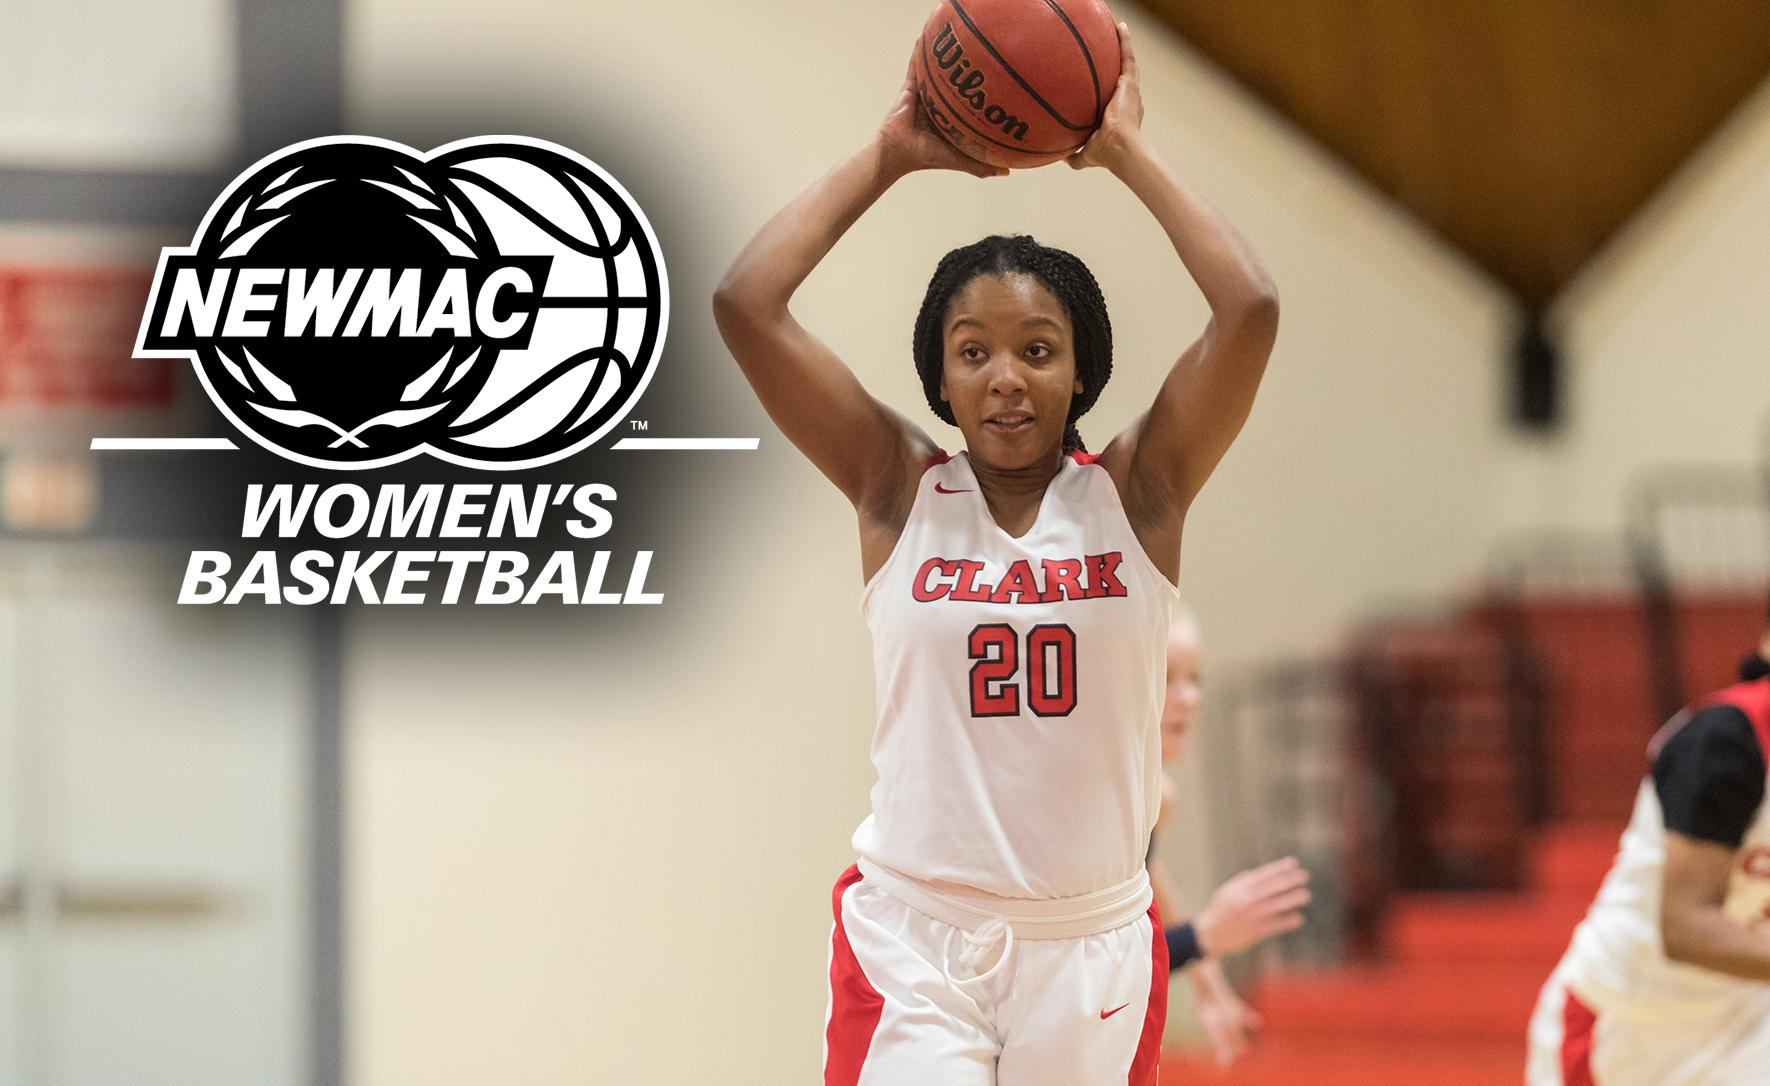 Ezemma Named to NEWMAC All-Conference Second Team